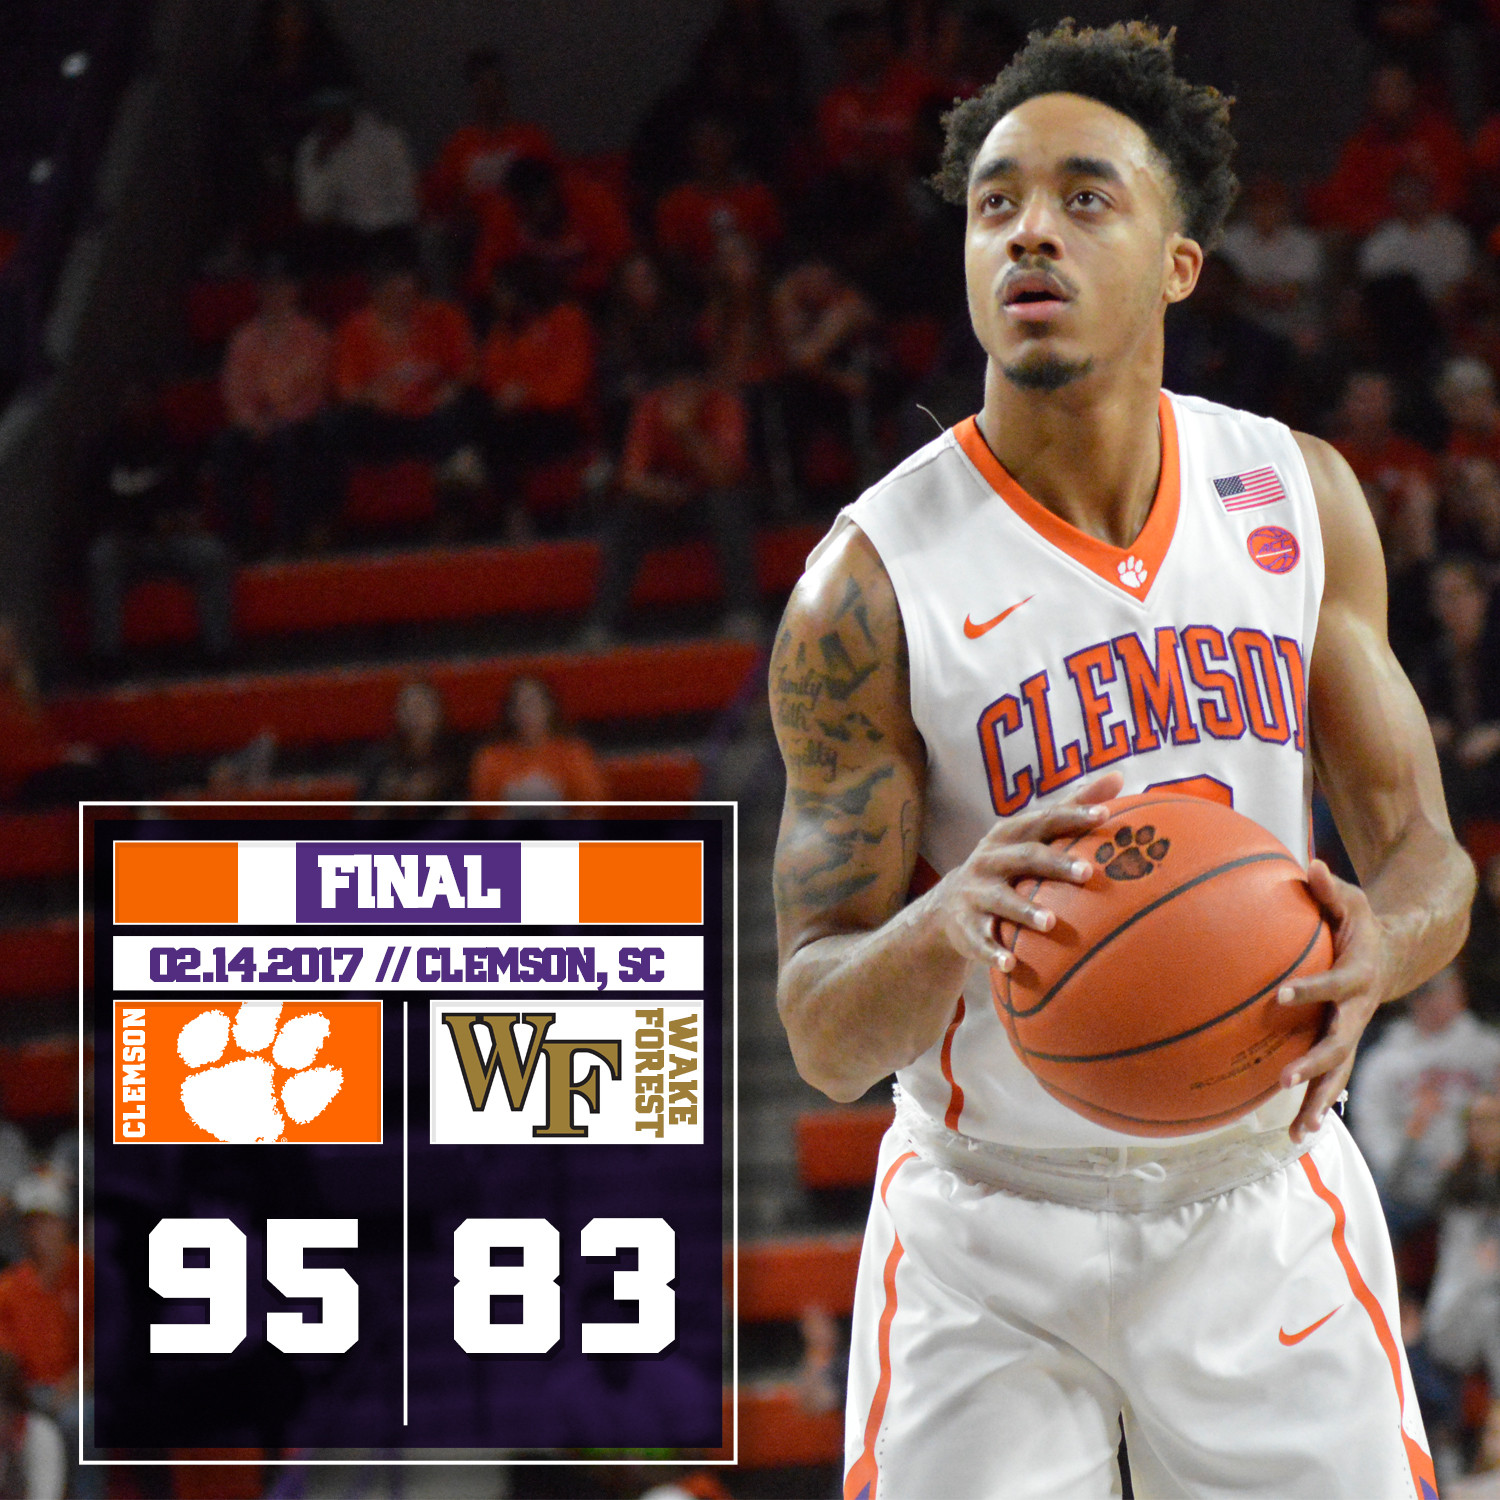 Tigers Sweep Wake Forest, Win 95-83